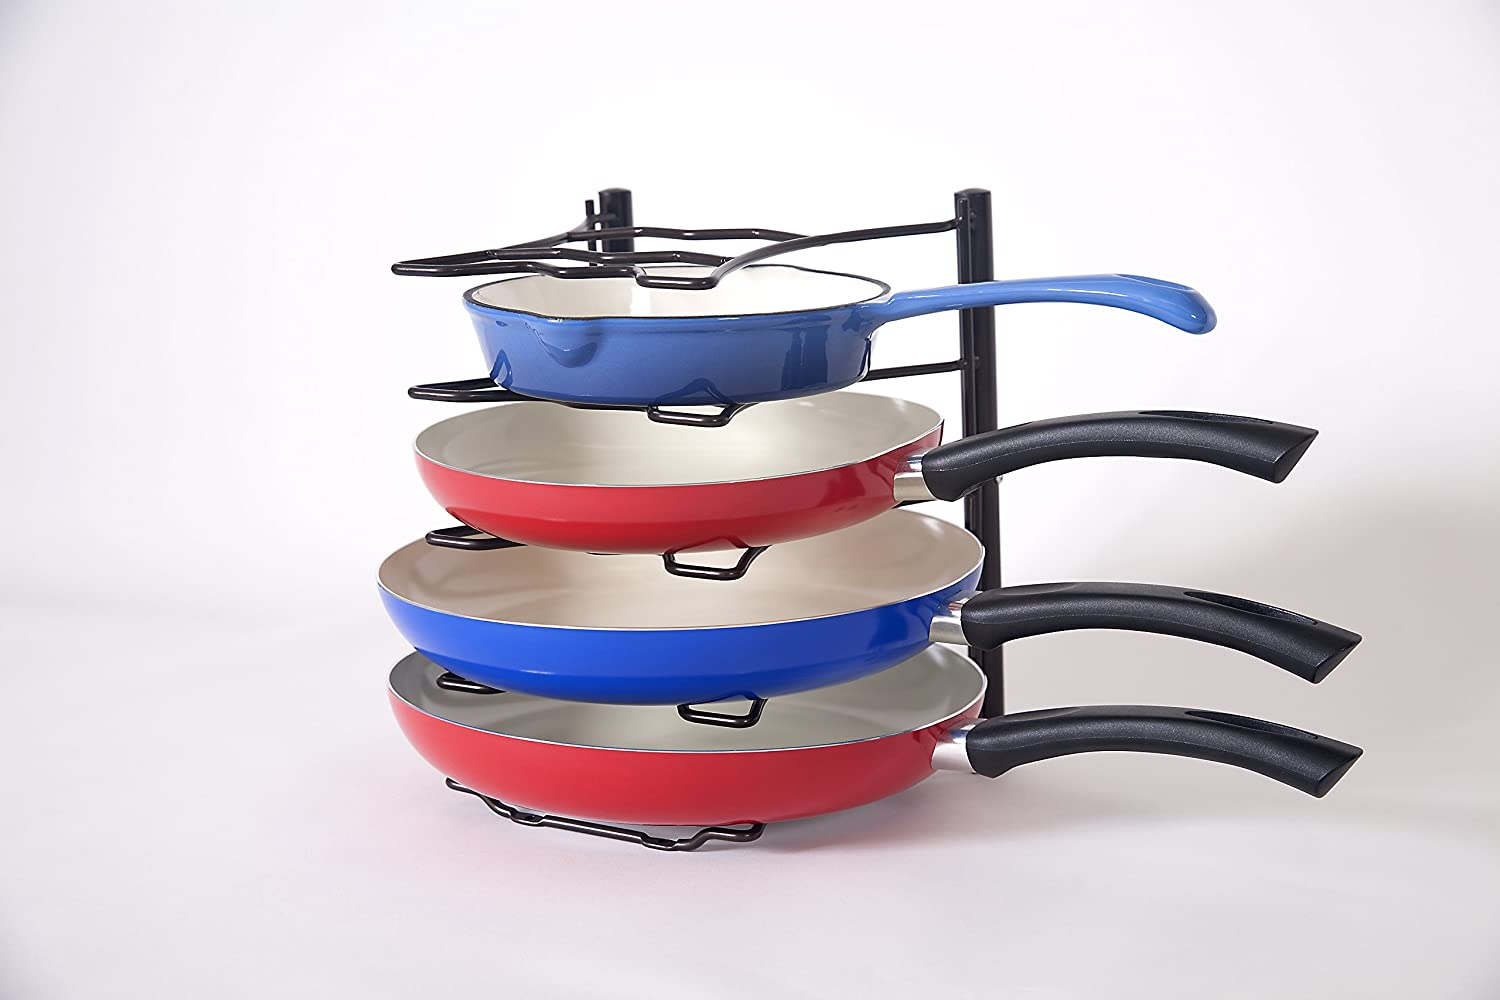 bahoki Essentials cacerola organizador, estante Rack, Rack de Pot, Pot Holder Almacena hasta 5 sartenes la perfecta cocina rack, bronce: Amazon.es: Hogar